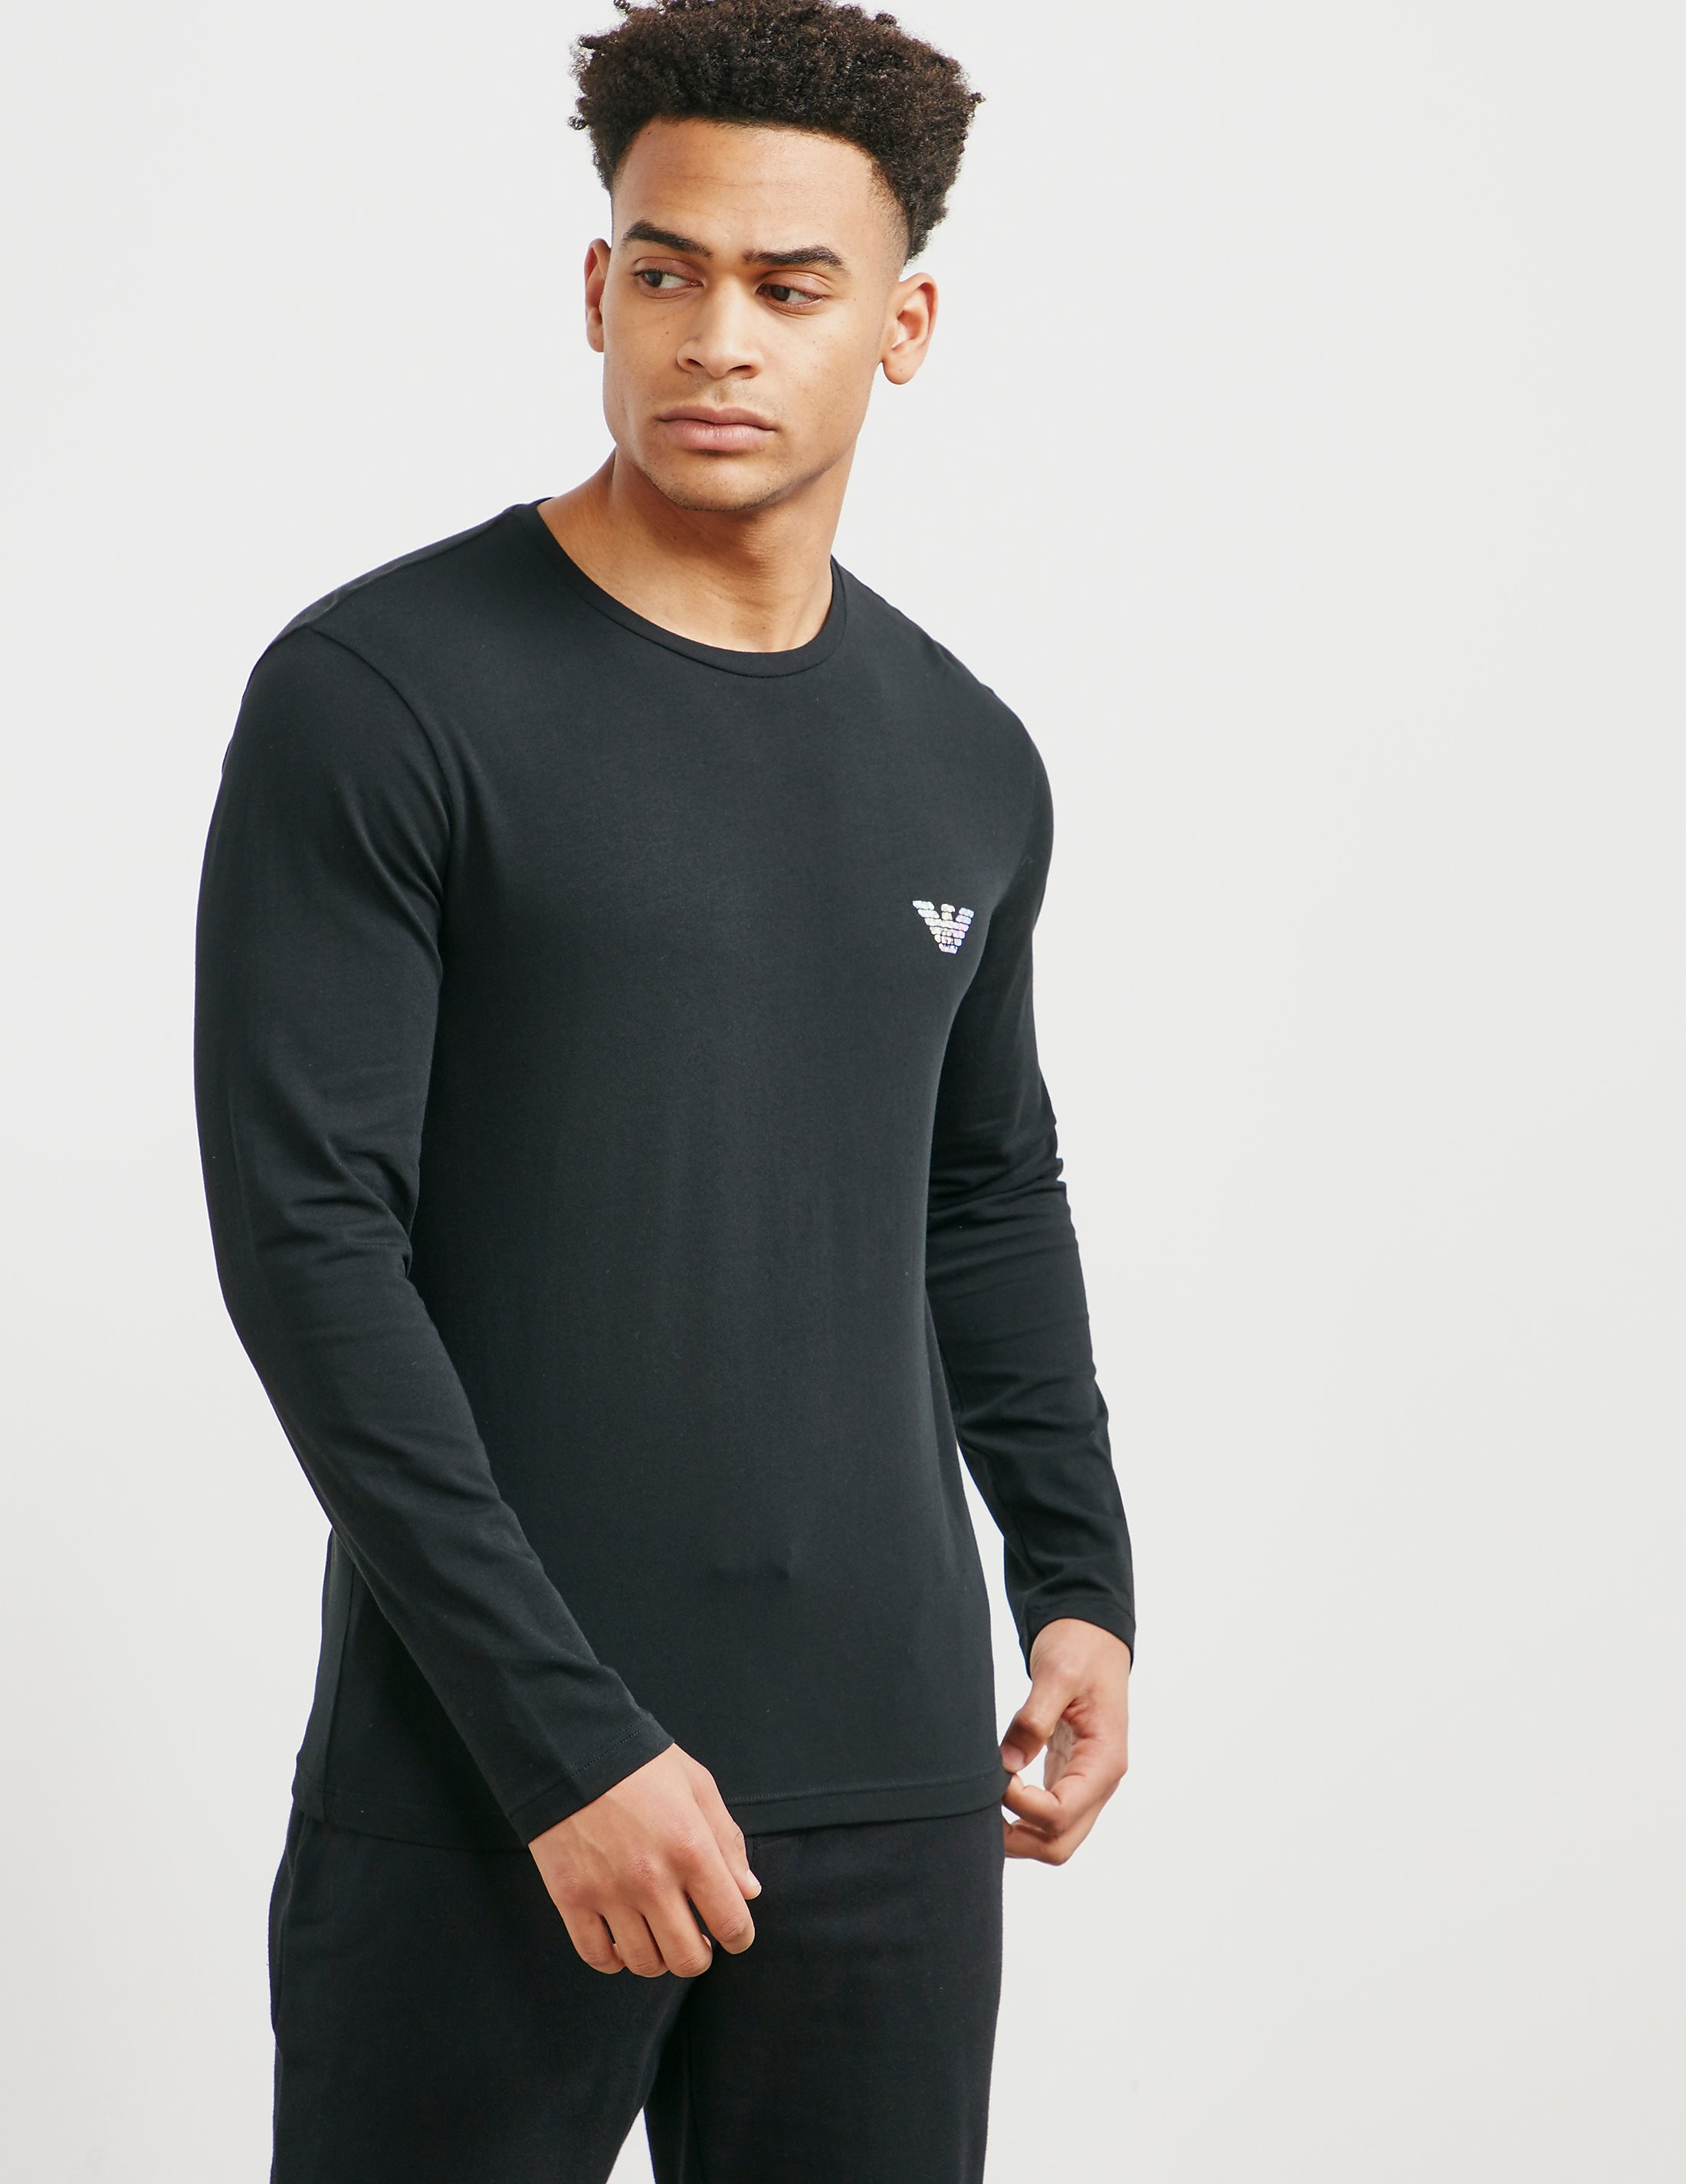 Emporio Armani Long Sleeve Hologram T-Shirt